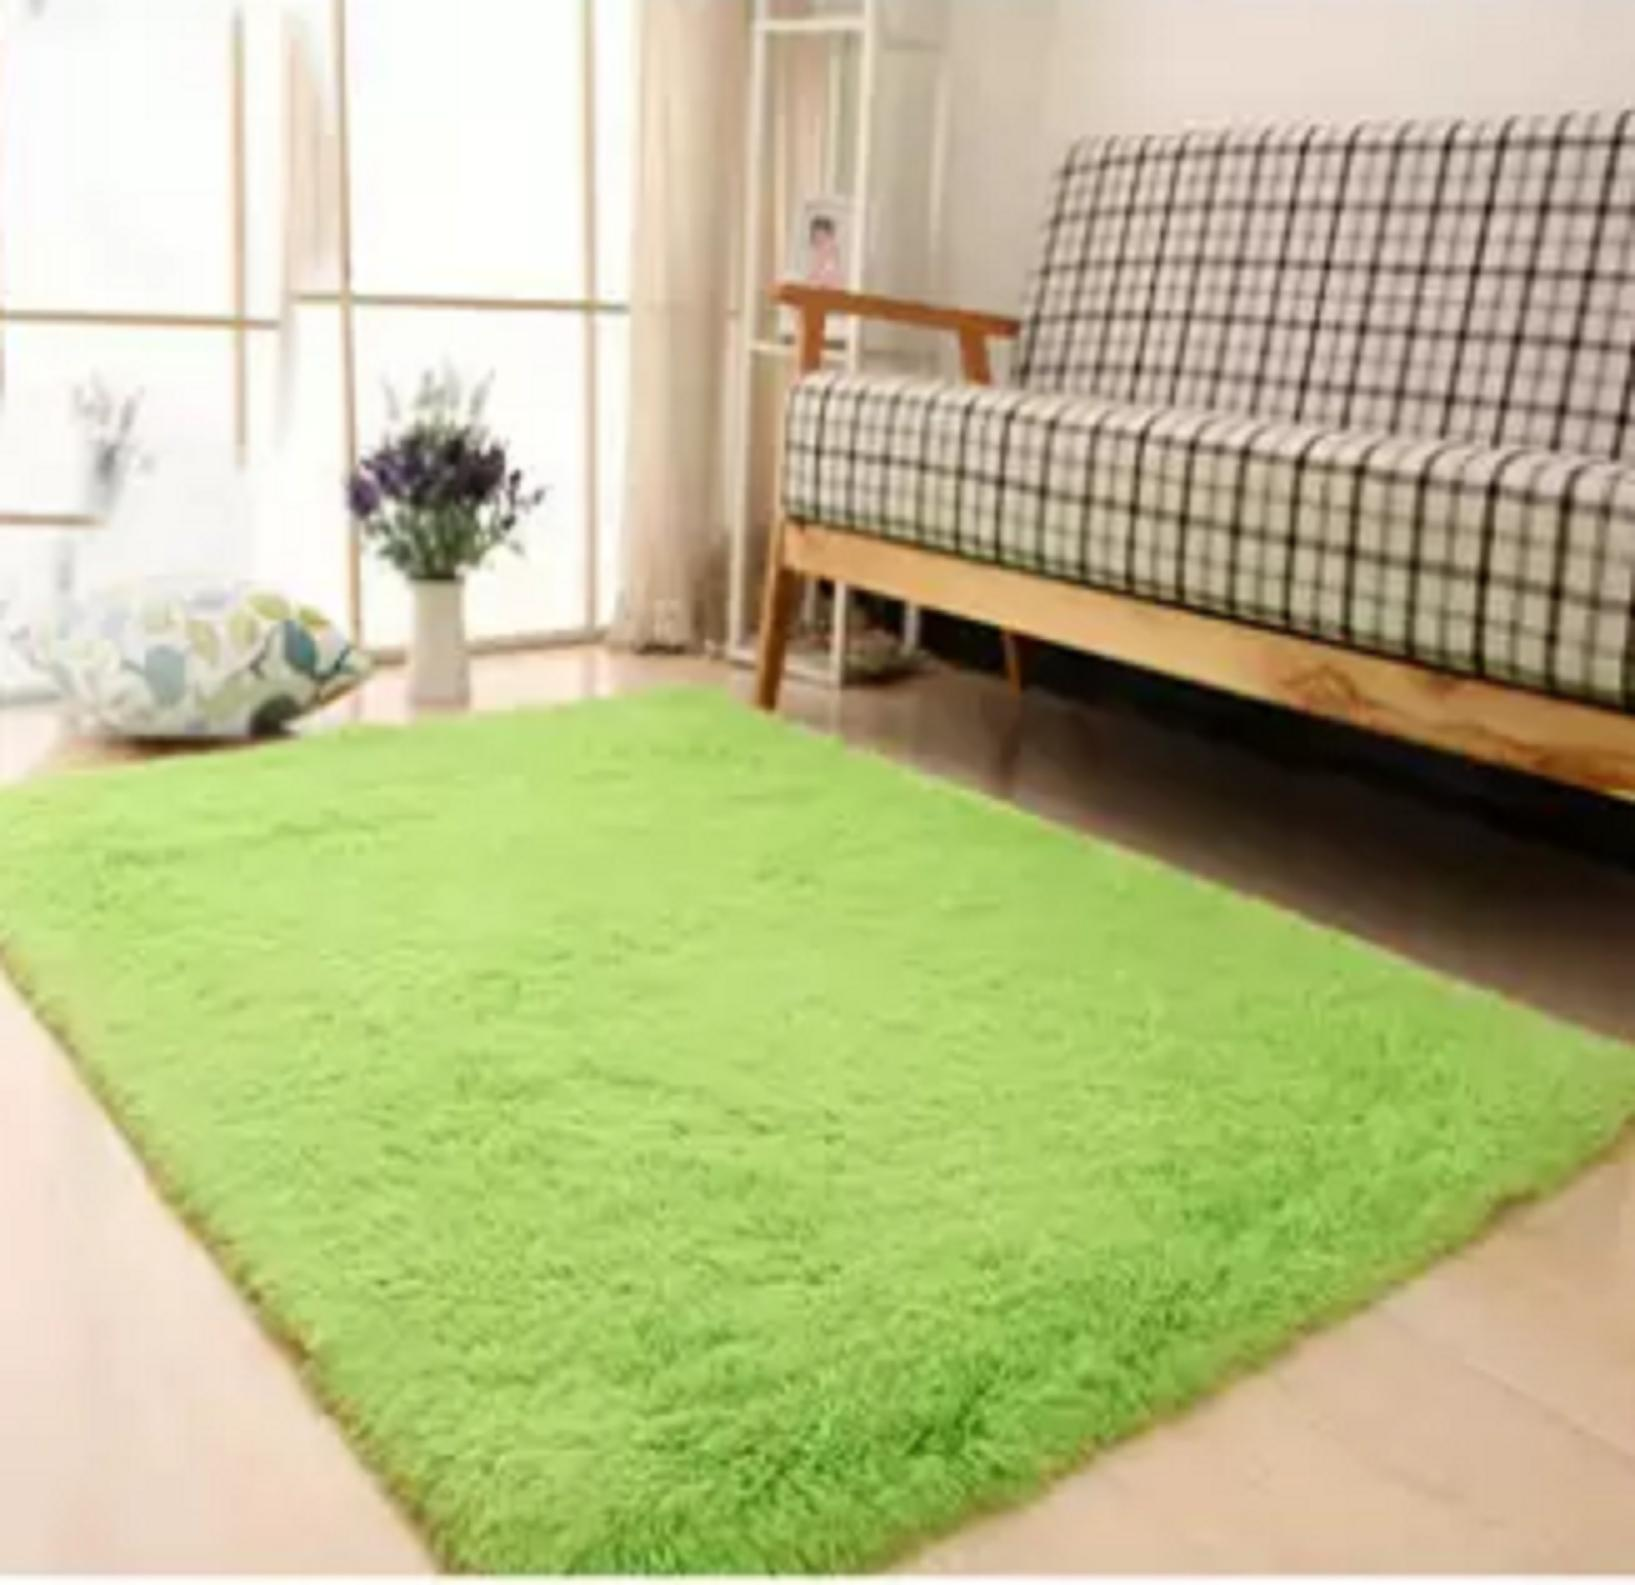 Rug & Carpet For Sale  Home Carpets Prices, Brands